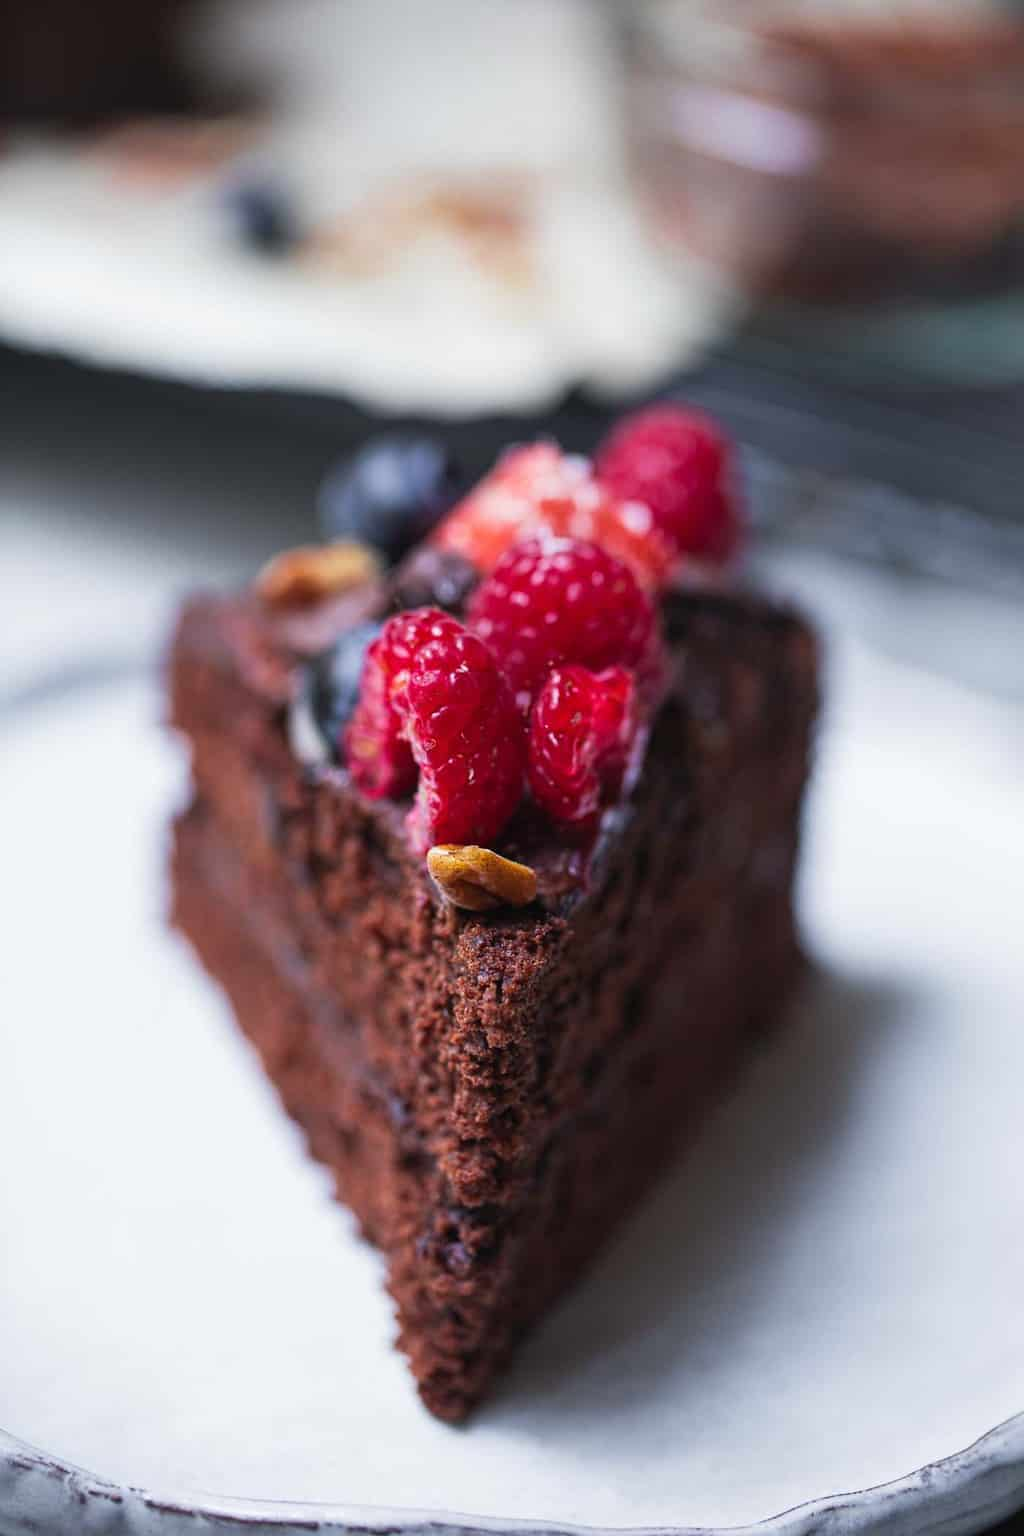 Slice of vegan chocolate cake with berries on a white plate